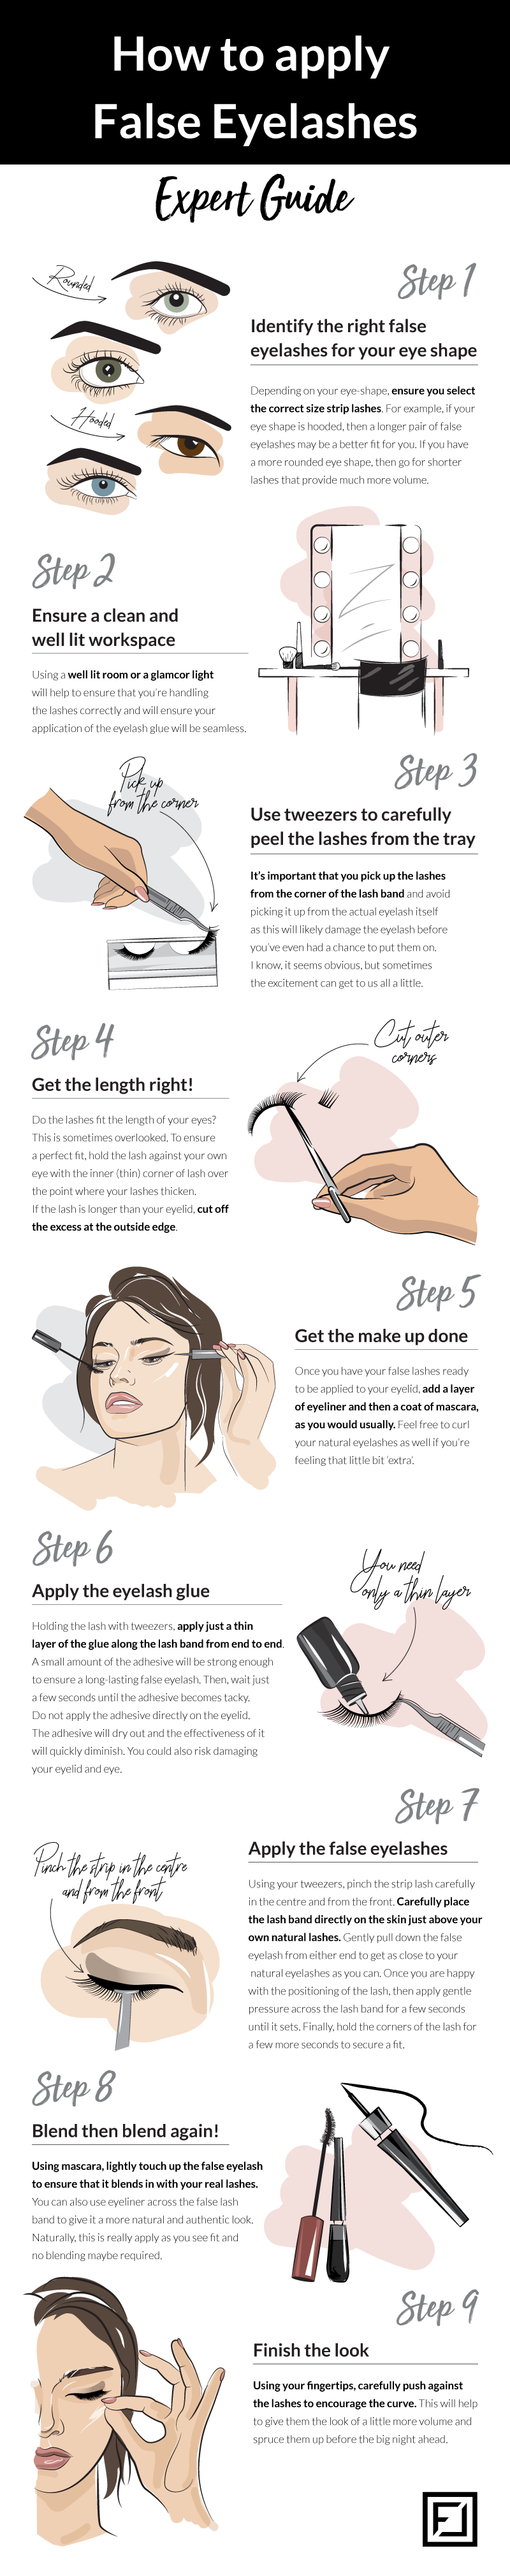 how to apply false eyelashes